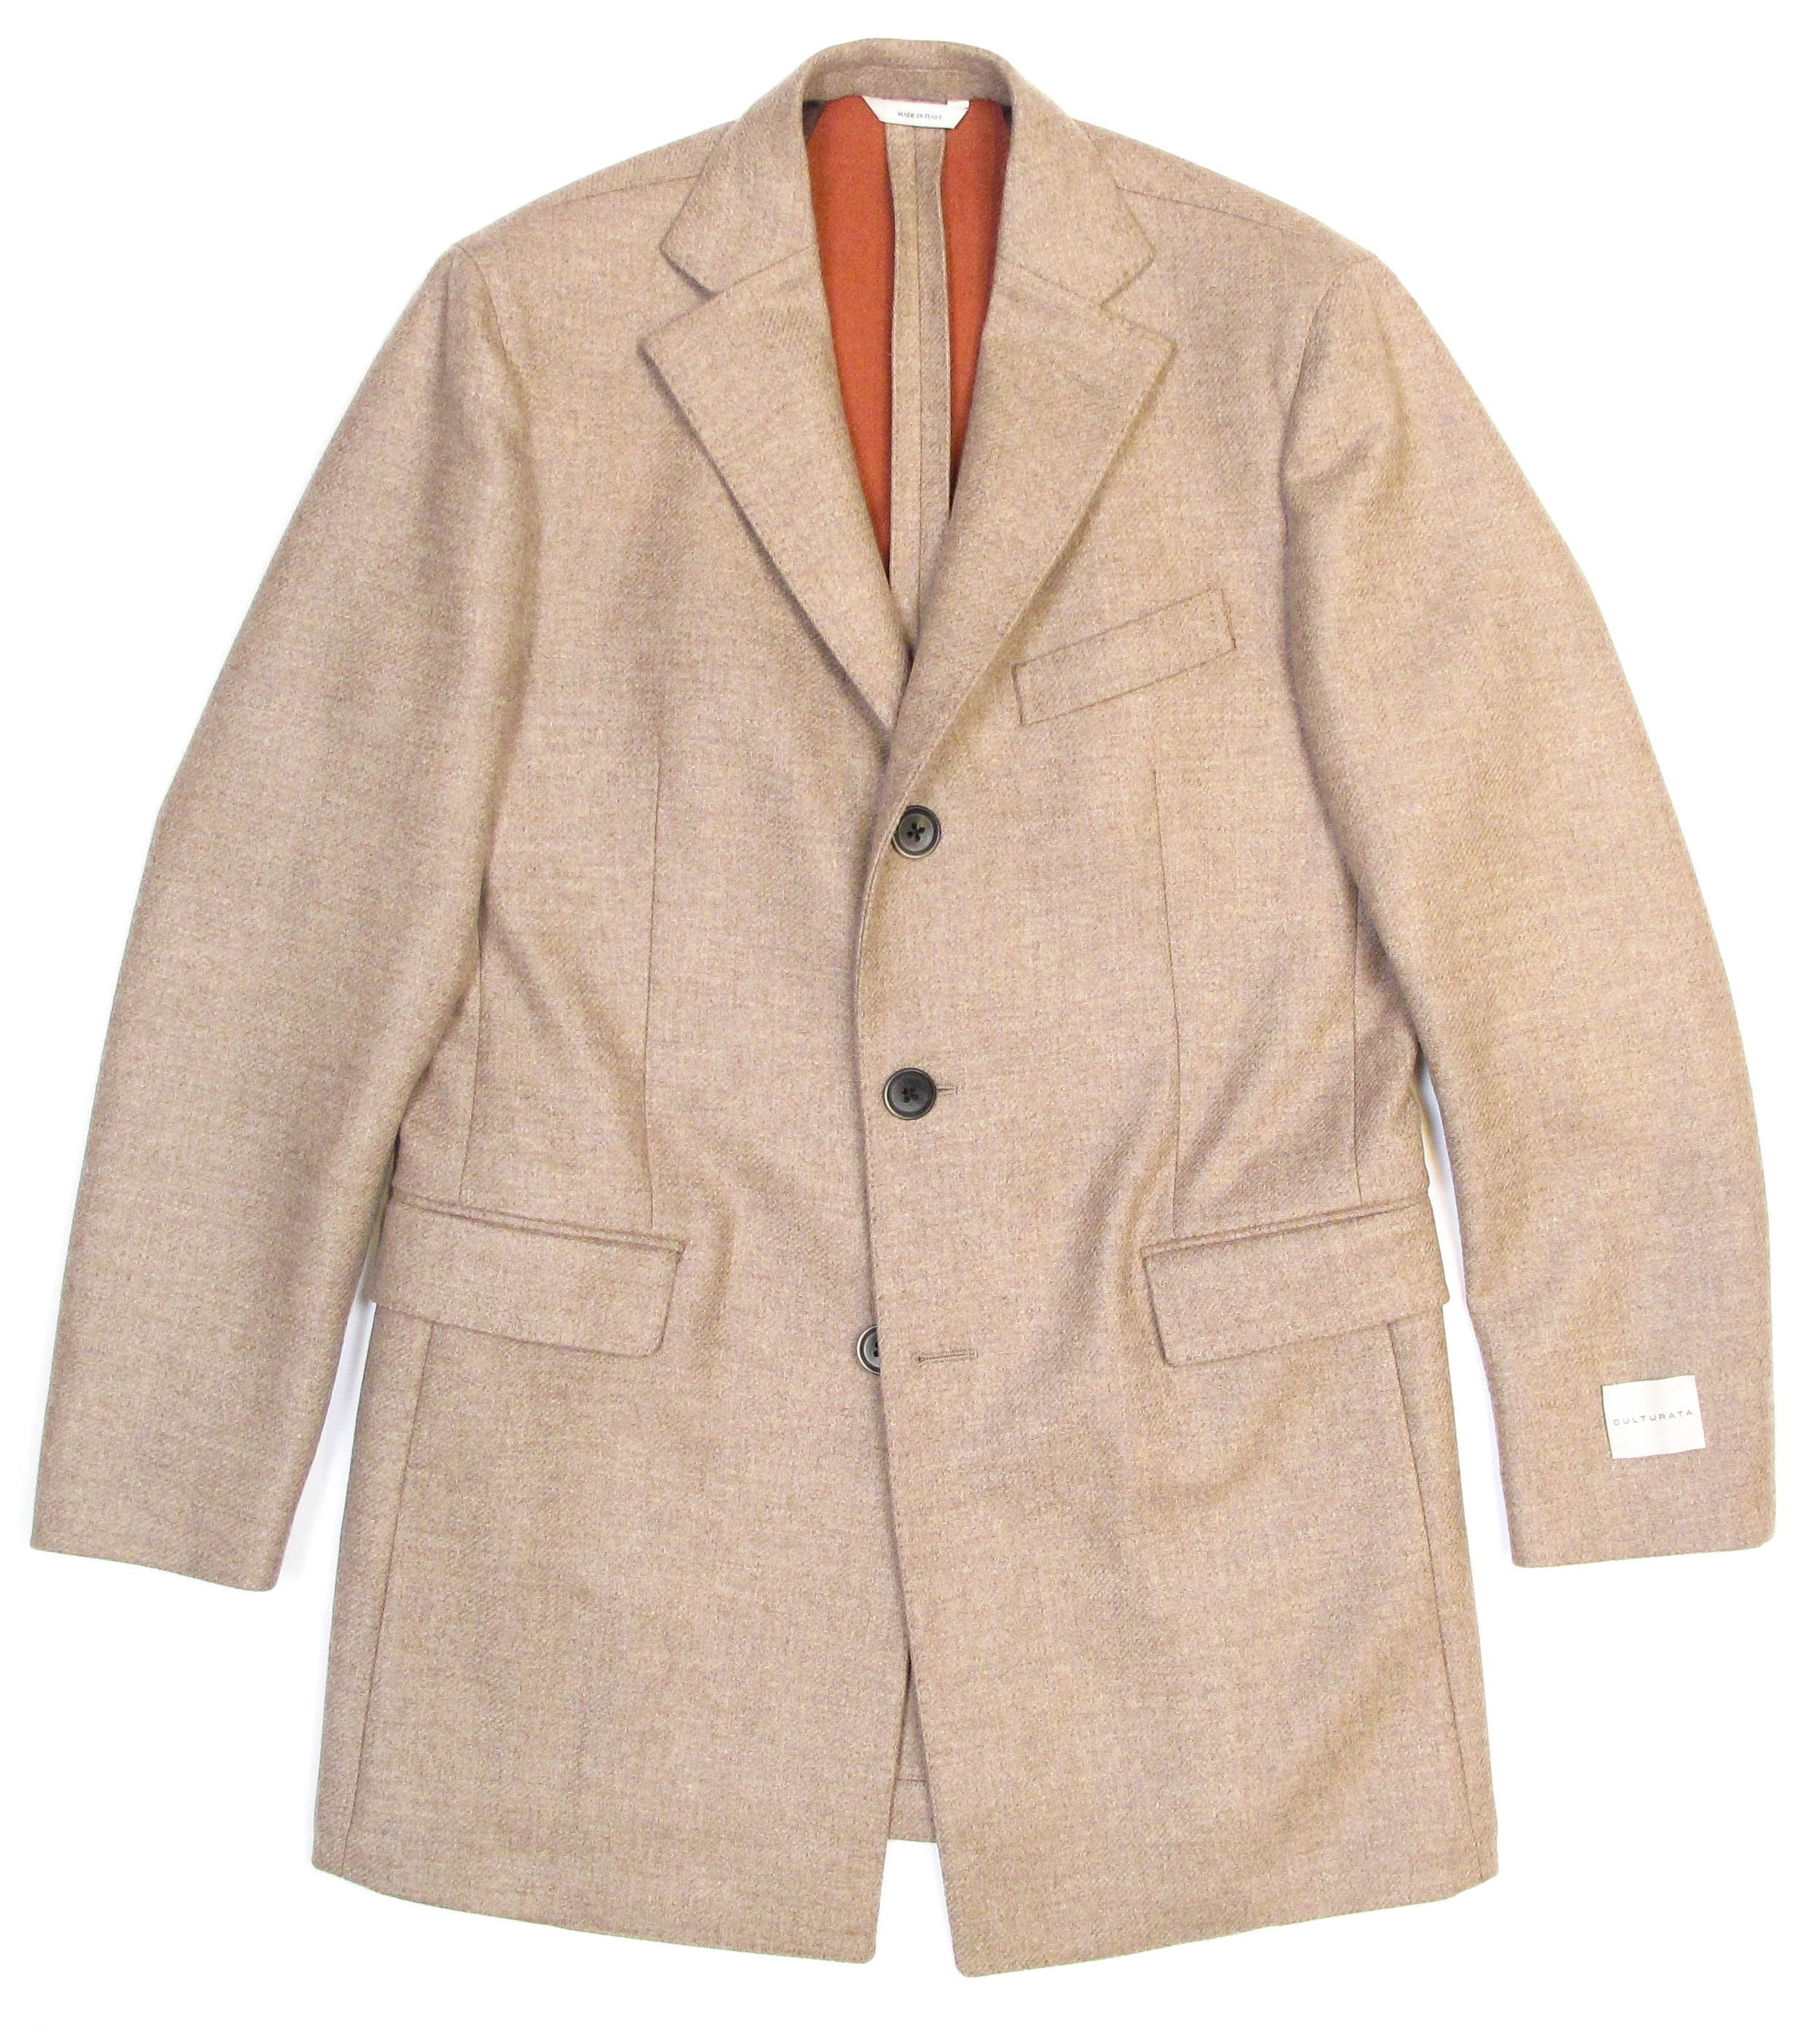 Italian Wool Stretch Coat - Tan/Orange